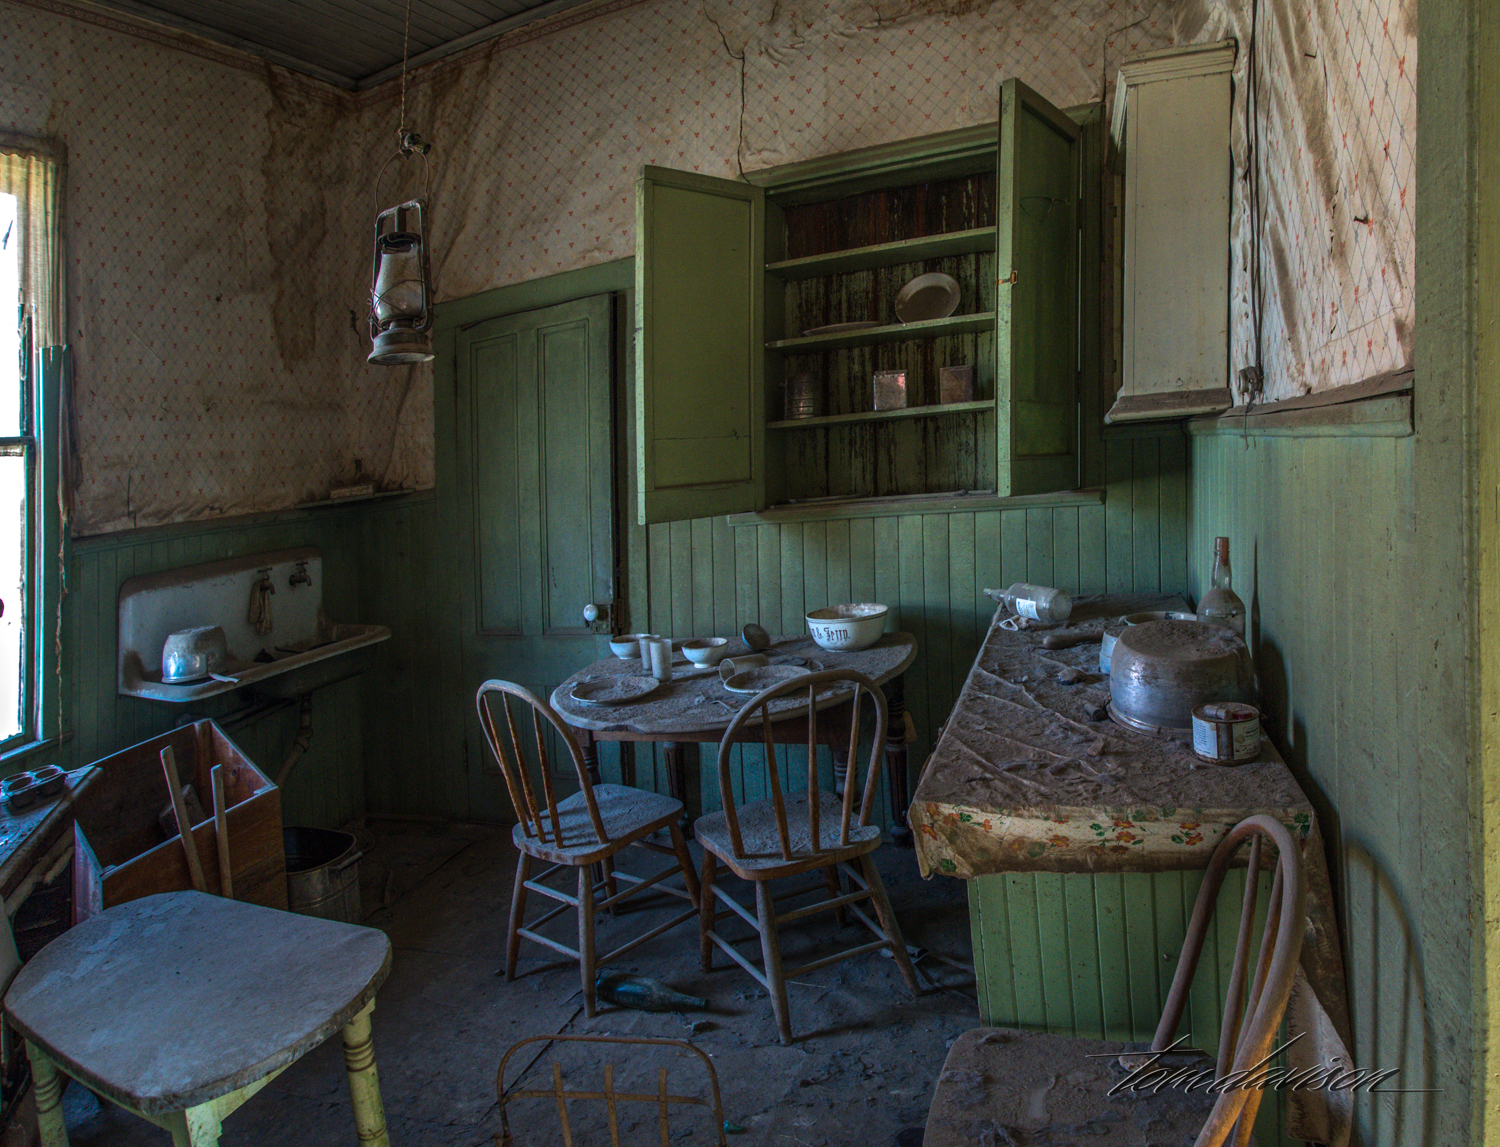 As mentioned, the rooms have not been cleaned up or changed since they were abandoned by their residents or business owners. It gives the whole place a very different feel than one might expect from other ghost towns where an effort is made to preserve them as they were when being used.